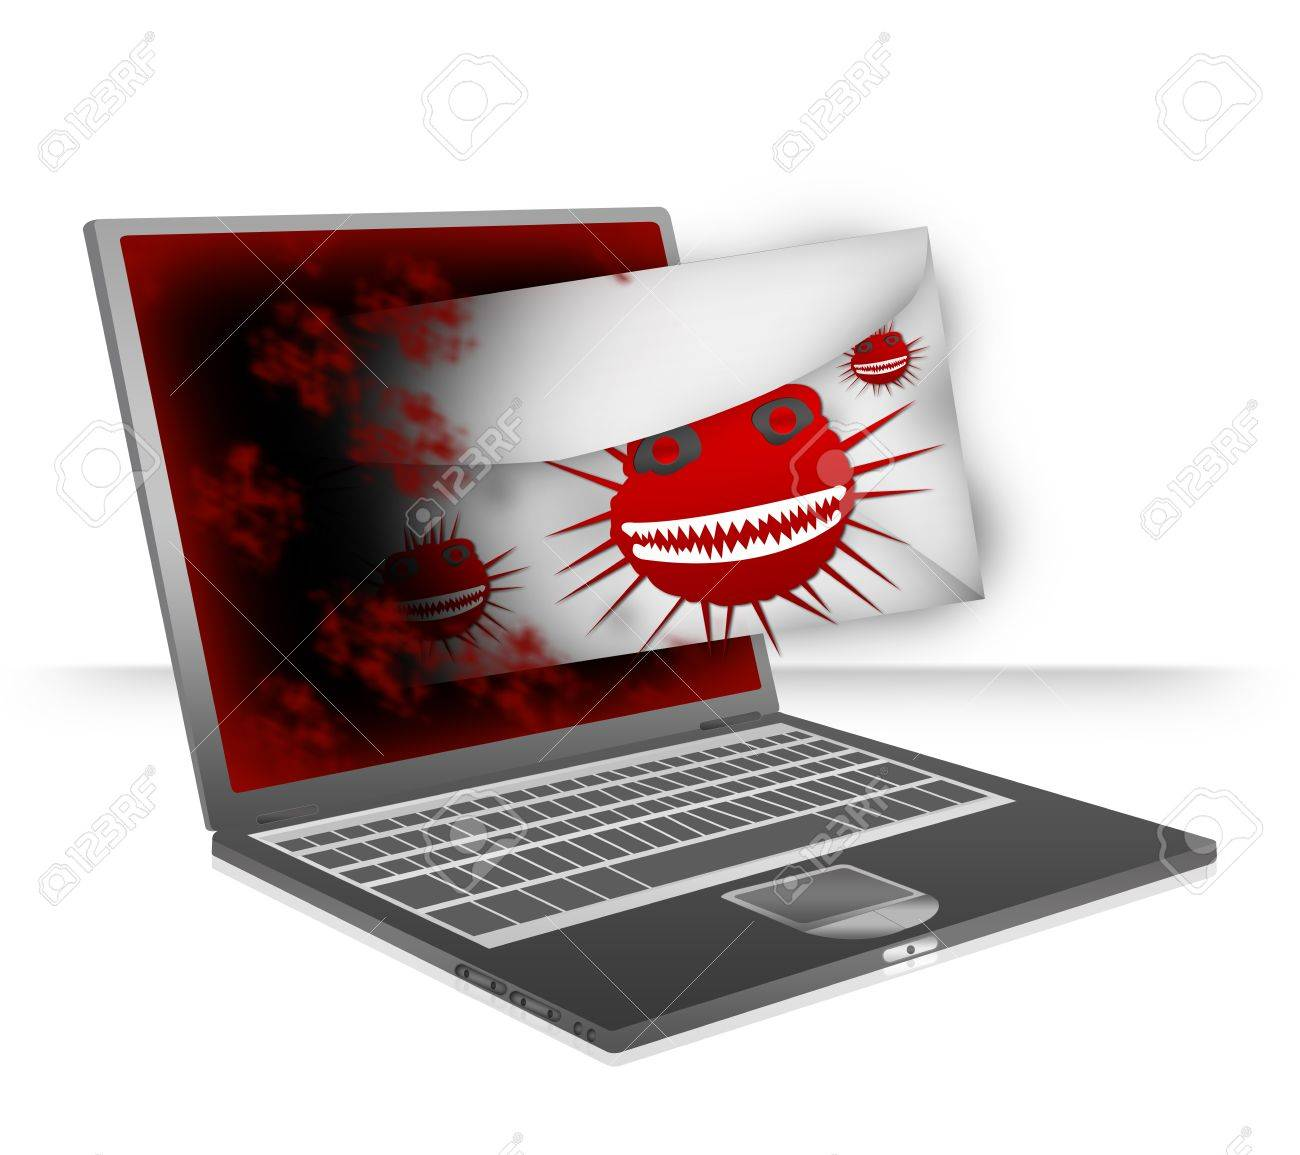 Computer Virus Concept Present By Computer Notebook Attacking ...